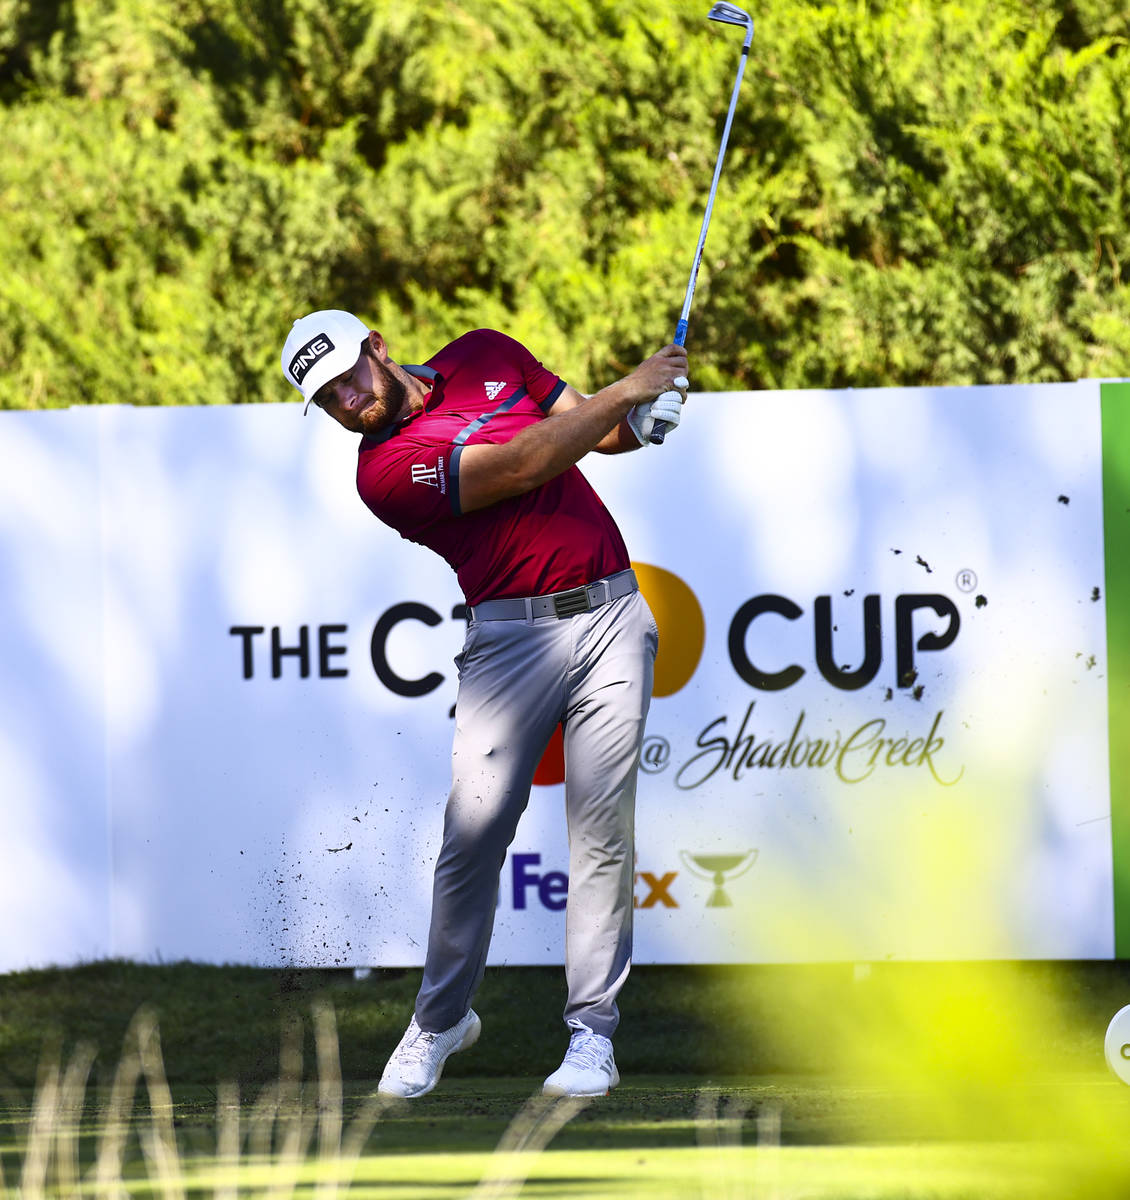 Tyrrell Hatton tees off at the fifth hole during the first round of the CJ Cup at the Shadow Cr ...